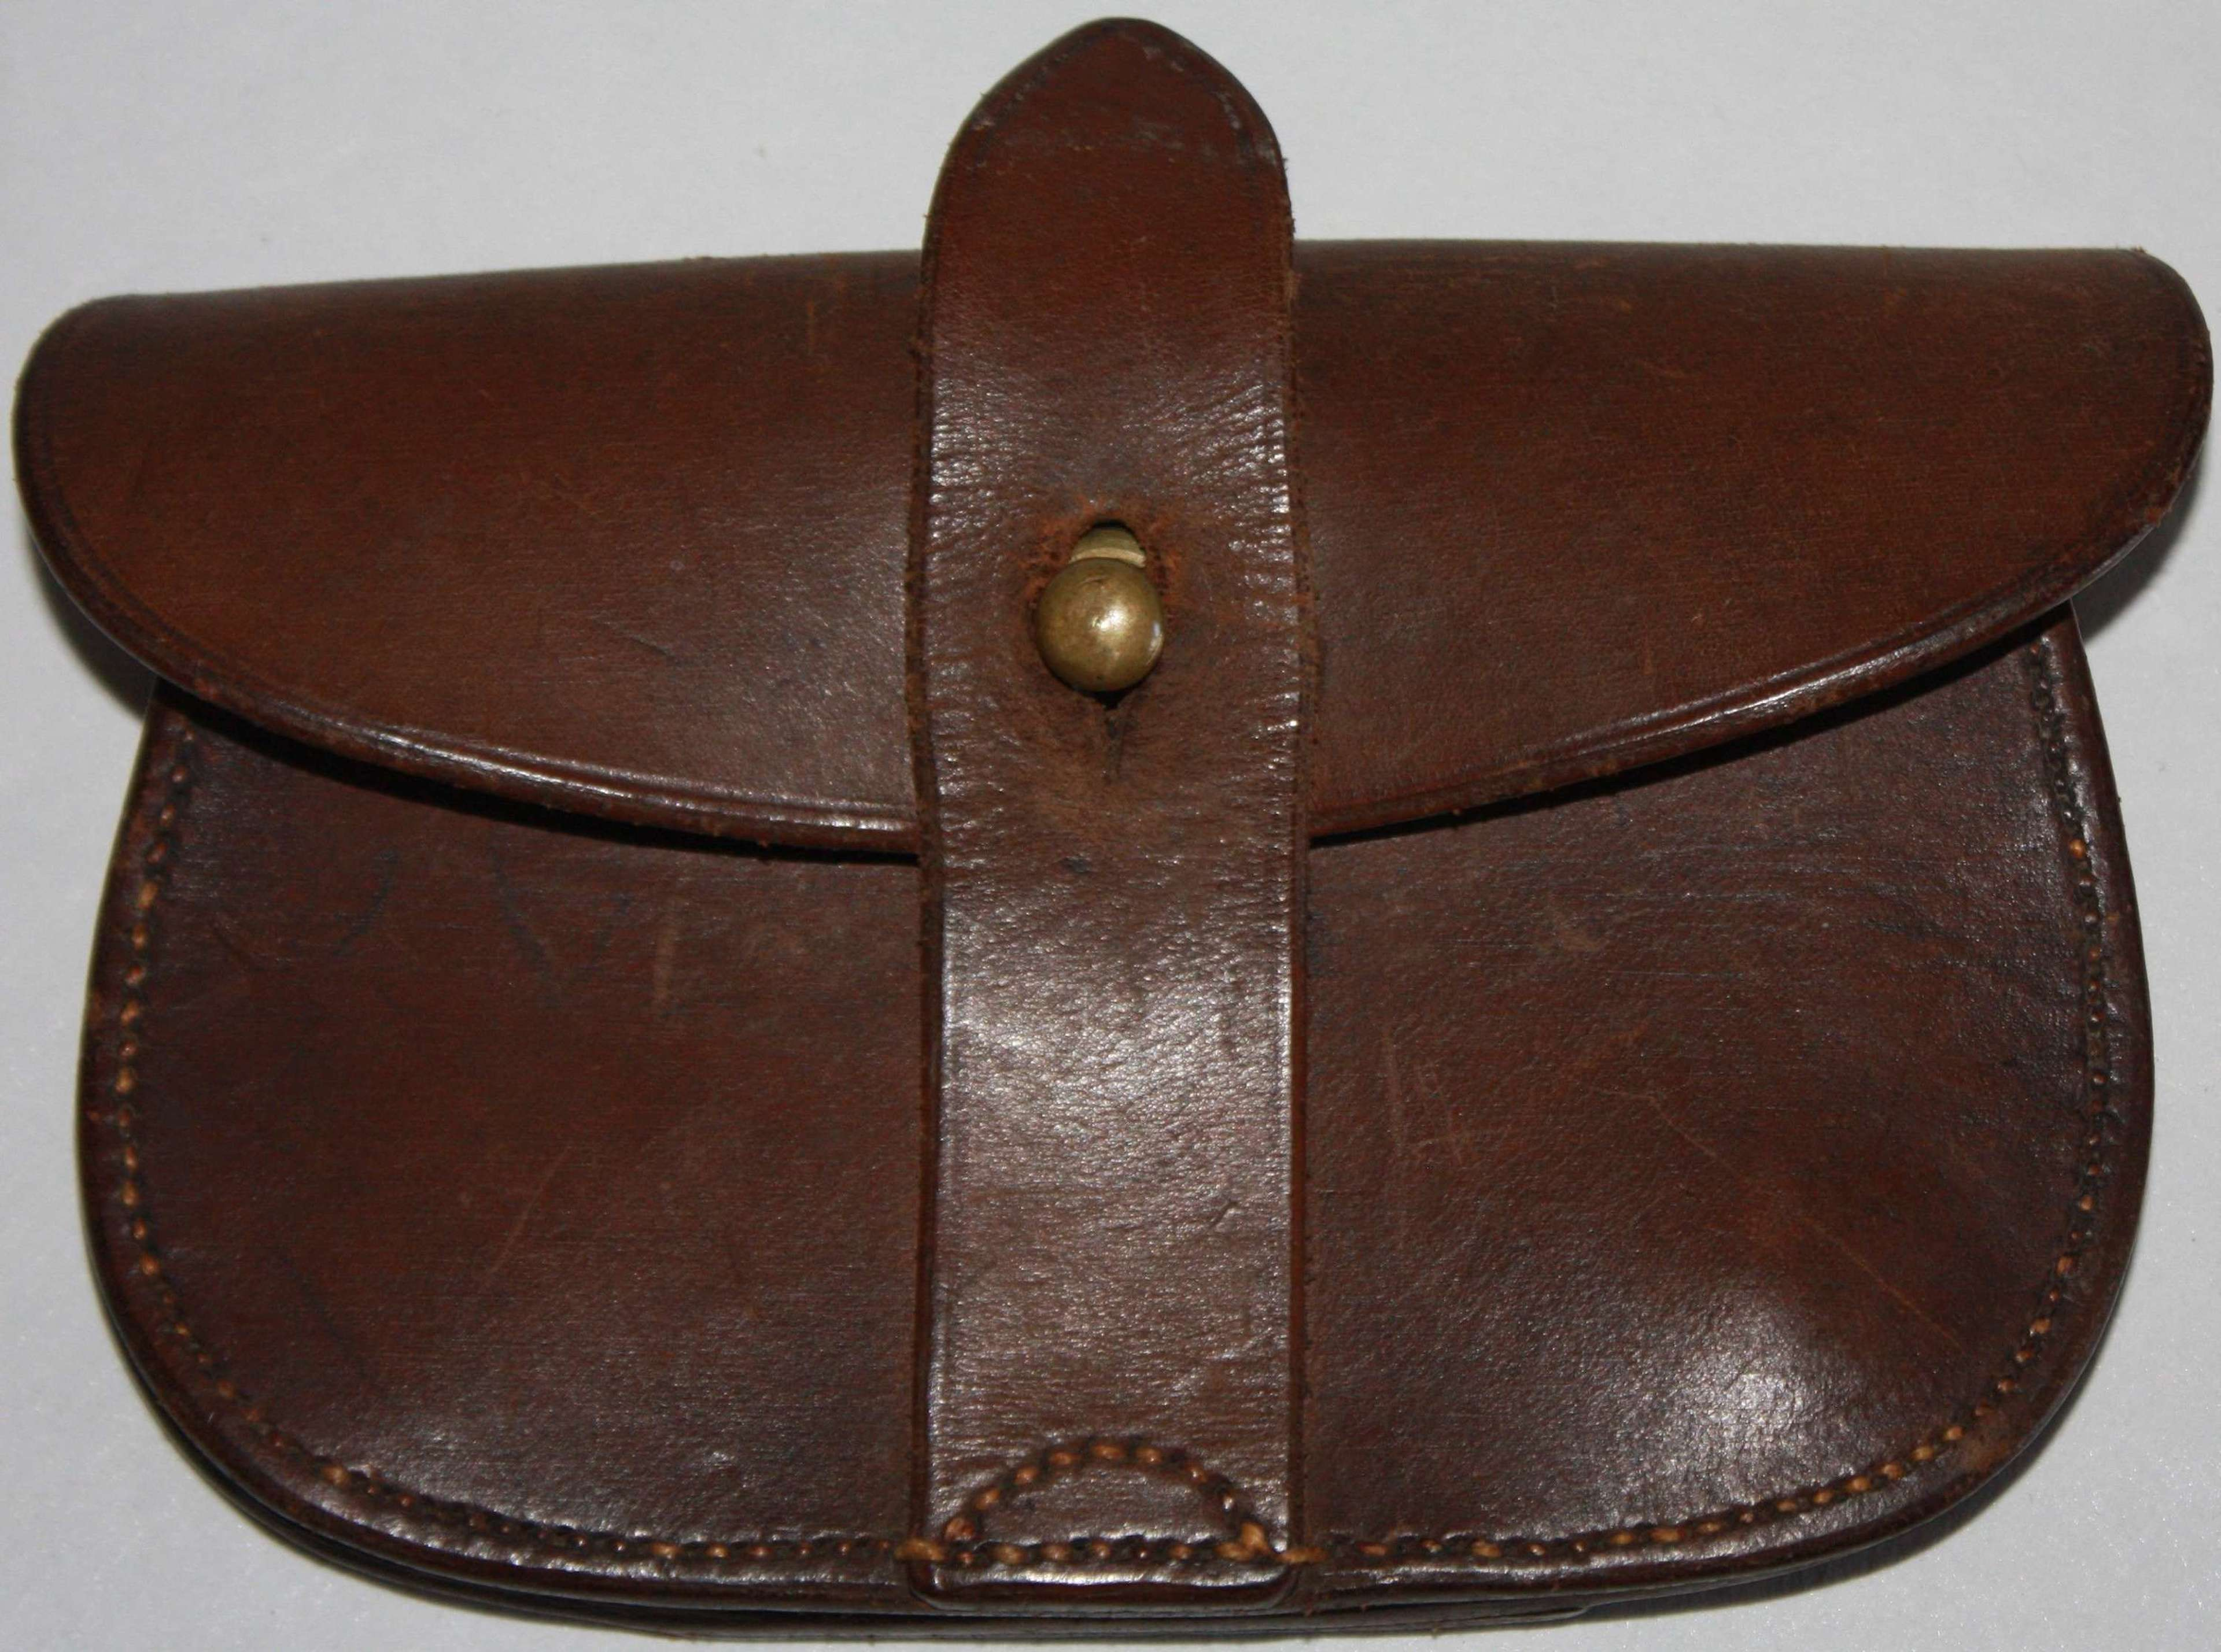 A GOOD LATE WWI INTER WAR PERIOD ISSUE SAM BROWN PISTOL AMMO POUCH